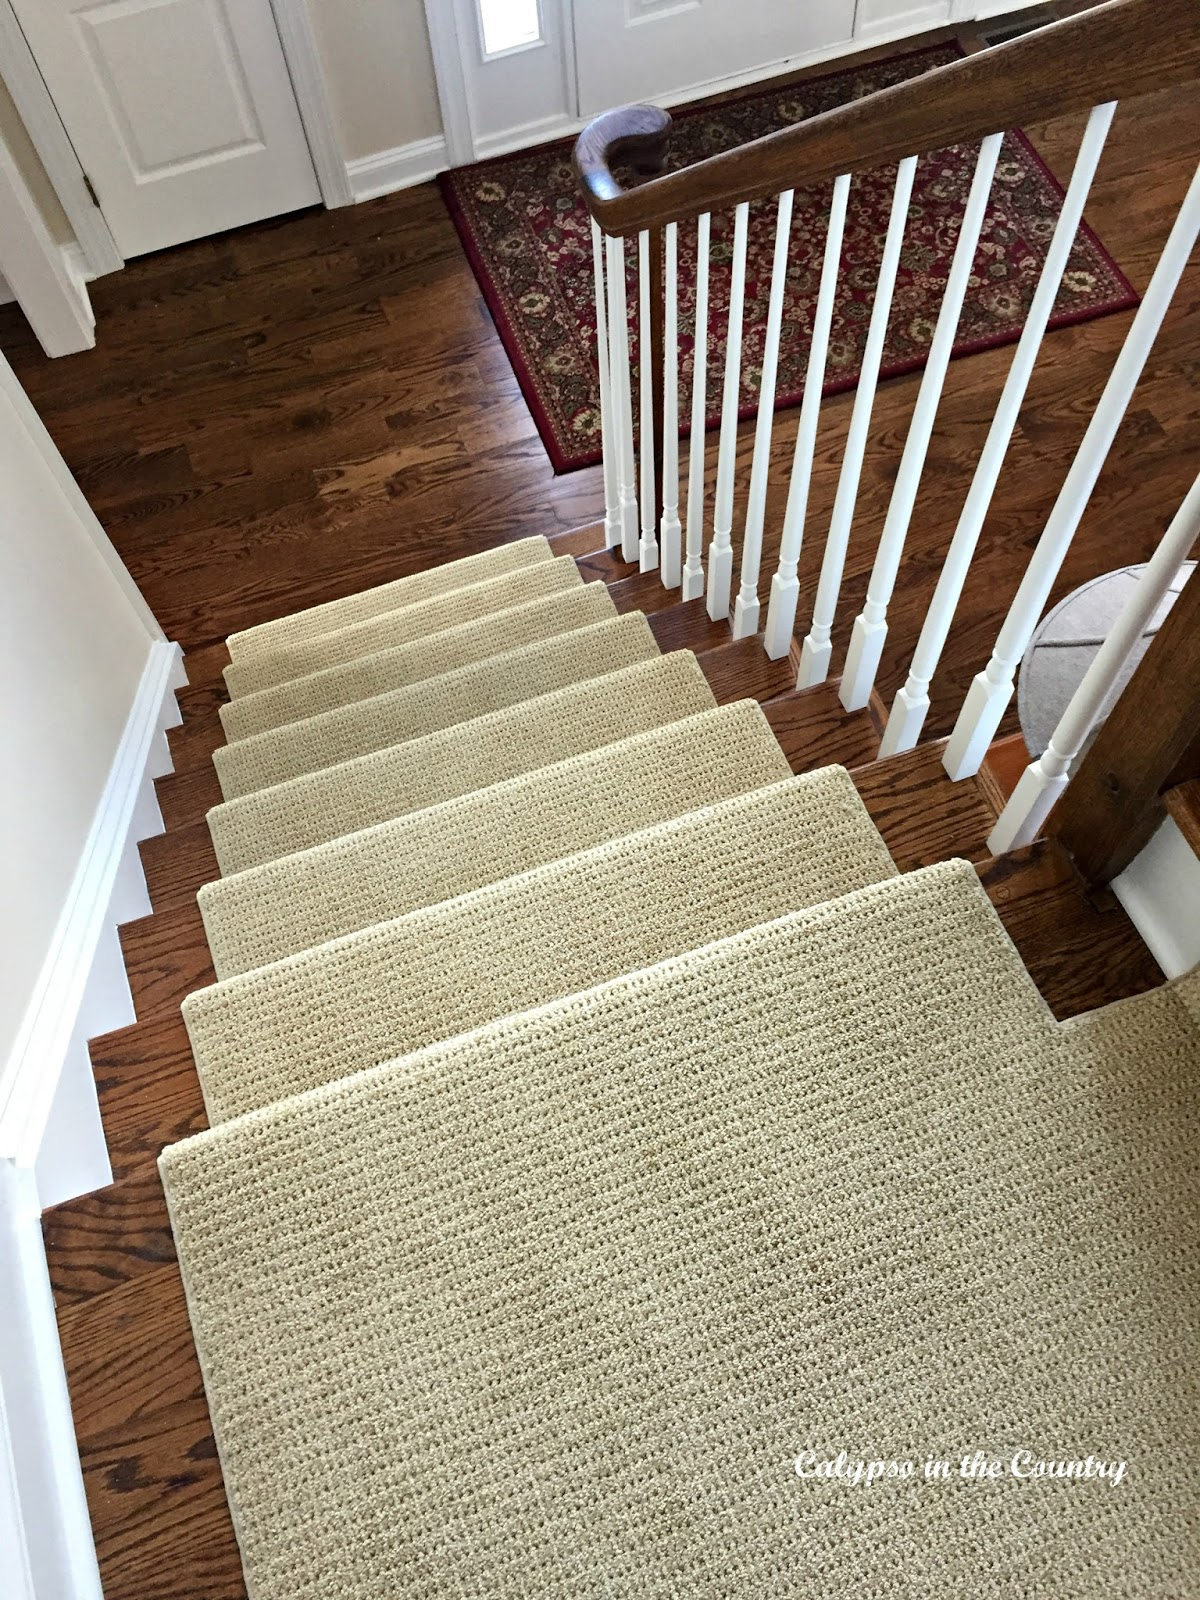 New Stair Runner on newly stained staircase